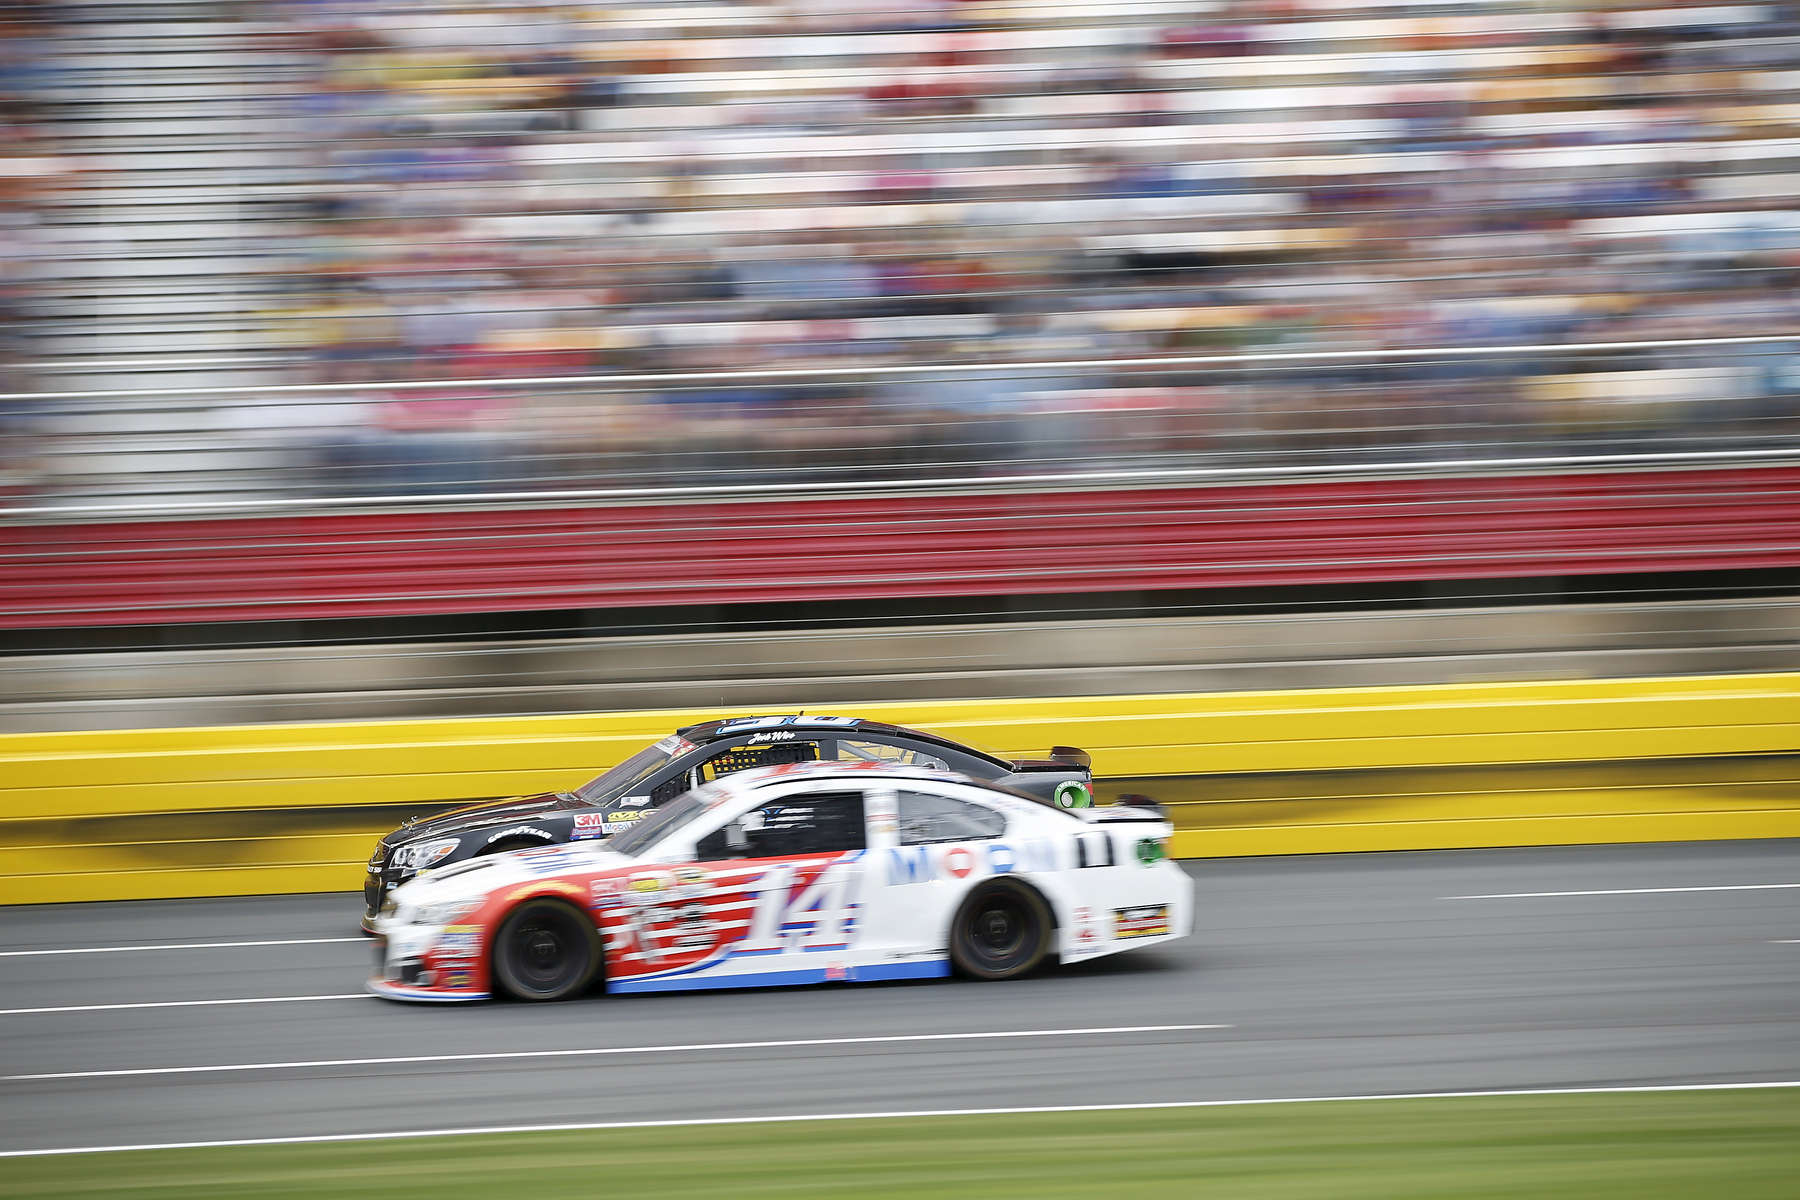 Sports POY: Runner UpEamon Queeney, North State Journal Tony Stewart in the No. 14. Mobil 1 Chevrolet passes Josh Wise in the No. 30 Curtis Key Plumbing Chevrolet during the Coca-Cola 600 at Charlotte Motor Speedway, Sunday, May 29, 2016. Martin Truex Jr. made NASCAR history in his No. 78 Furniture Row Racing Toyota by leading more laps and more miles than any other driver in any race in NASCAR history while landing himself in Victory Lane.